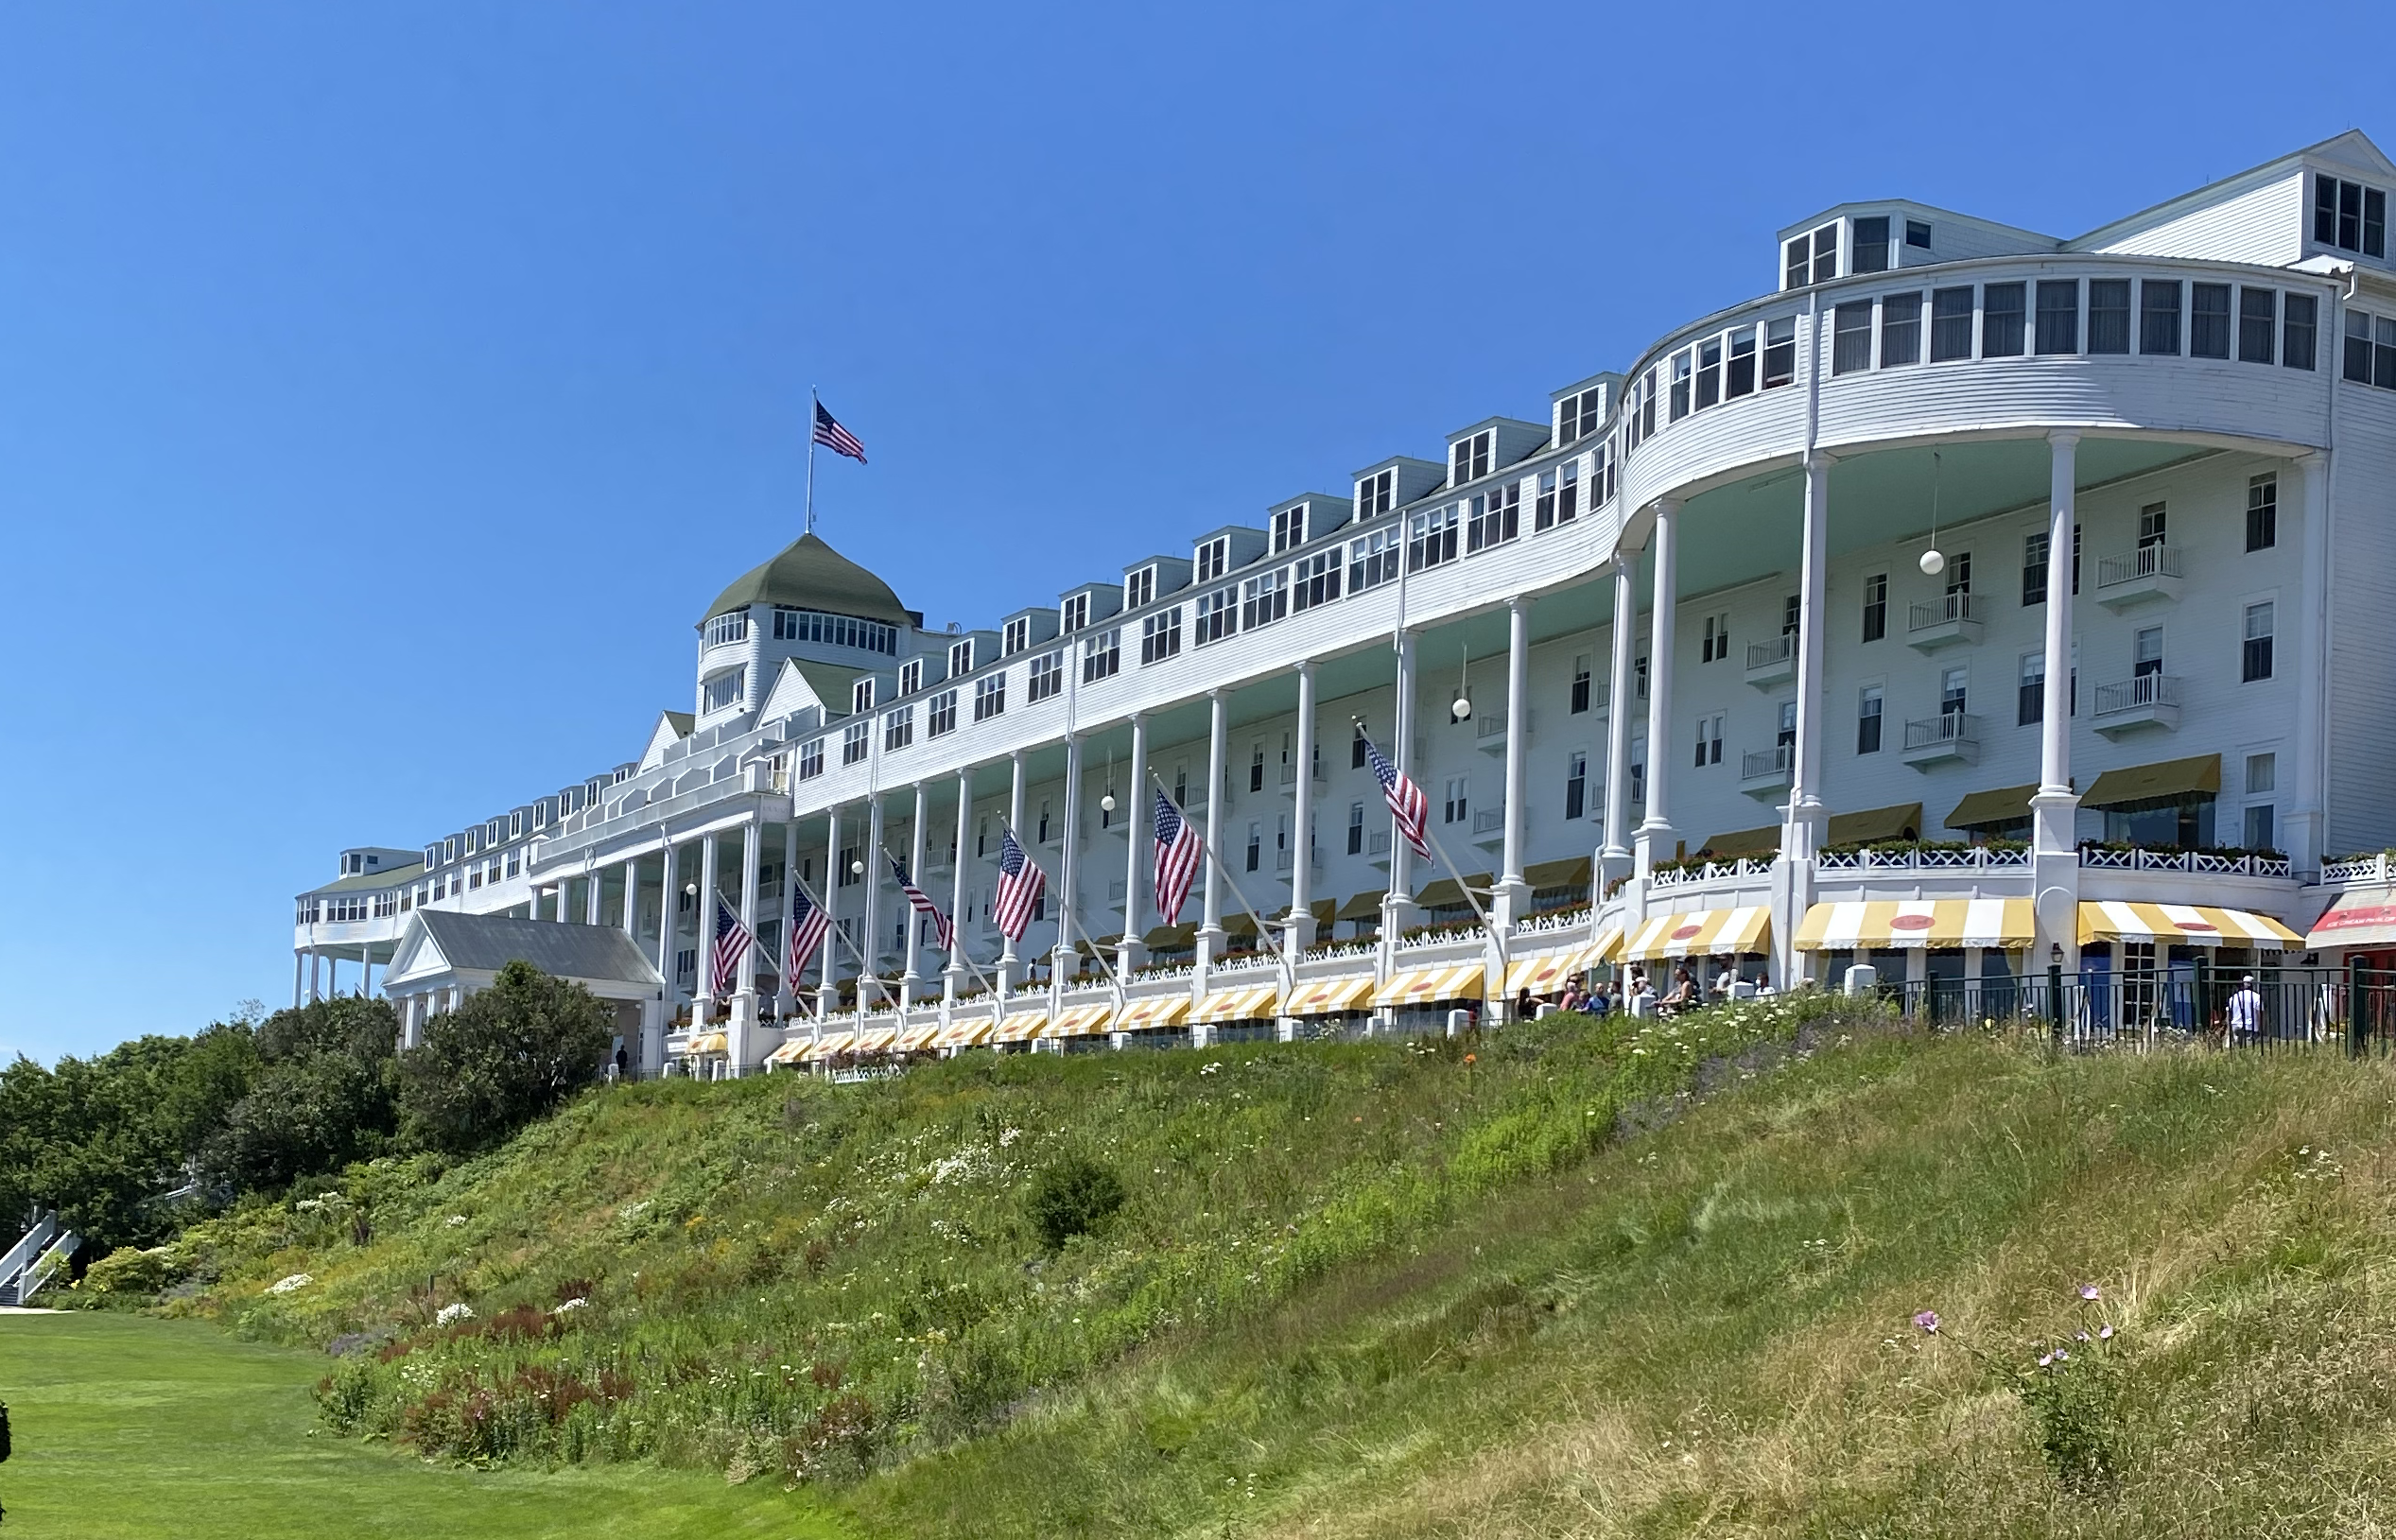 Visiting the Grand Hotel is one of many things to do on Mackinac Island.